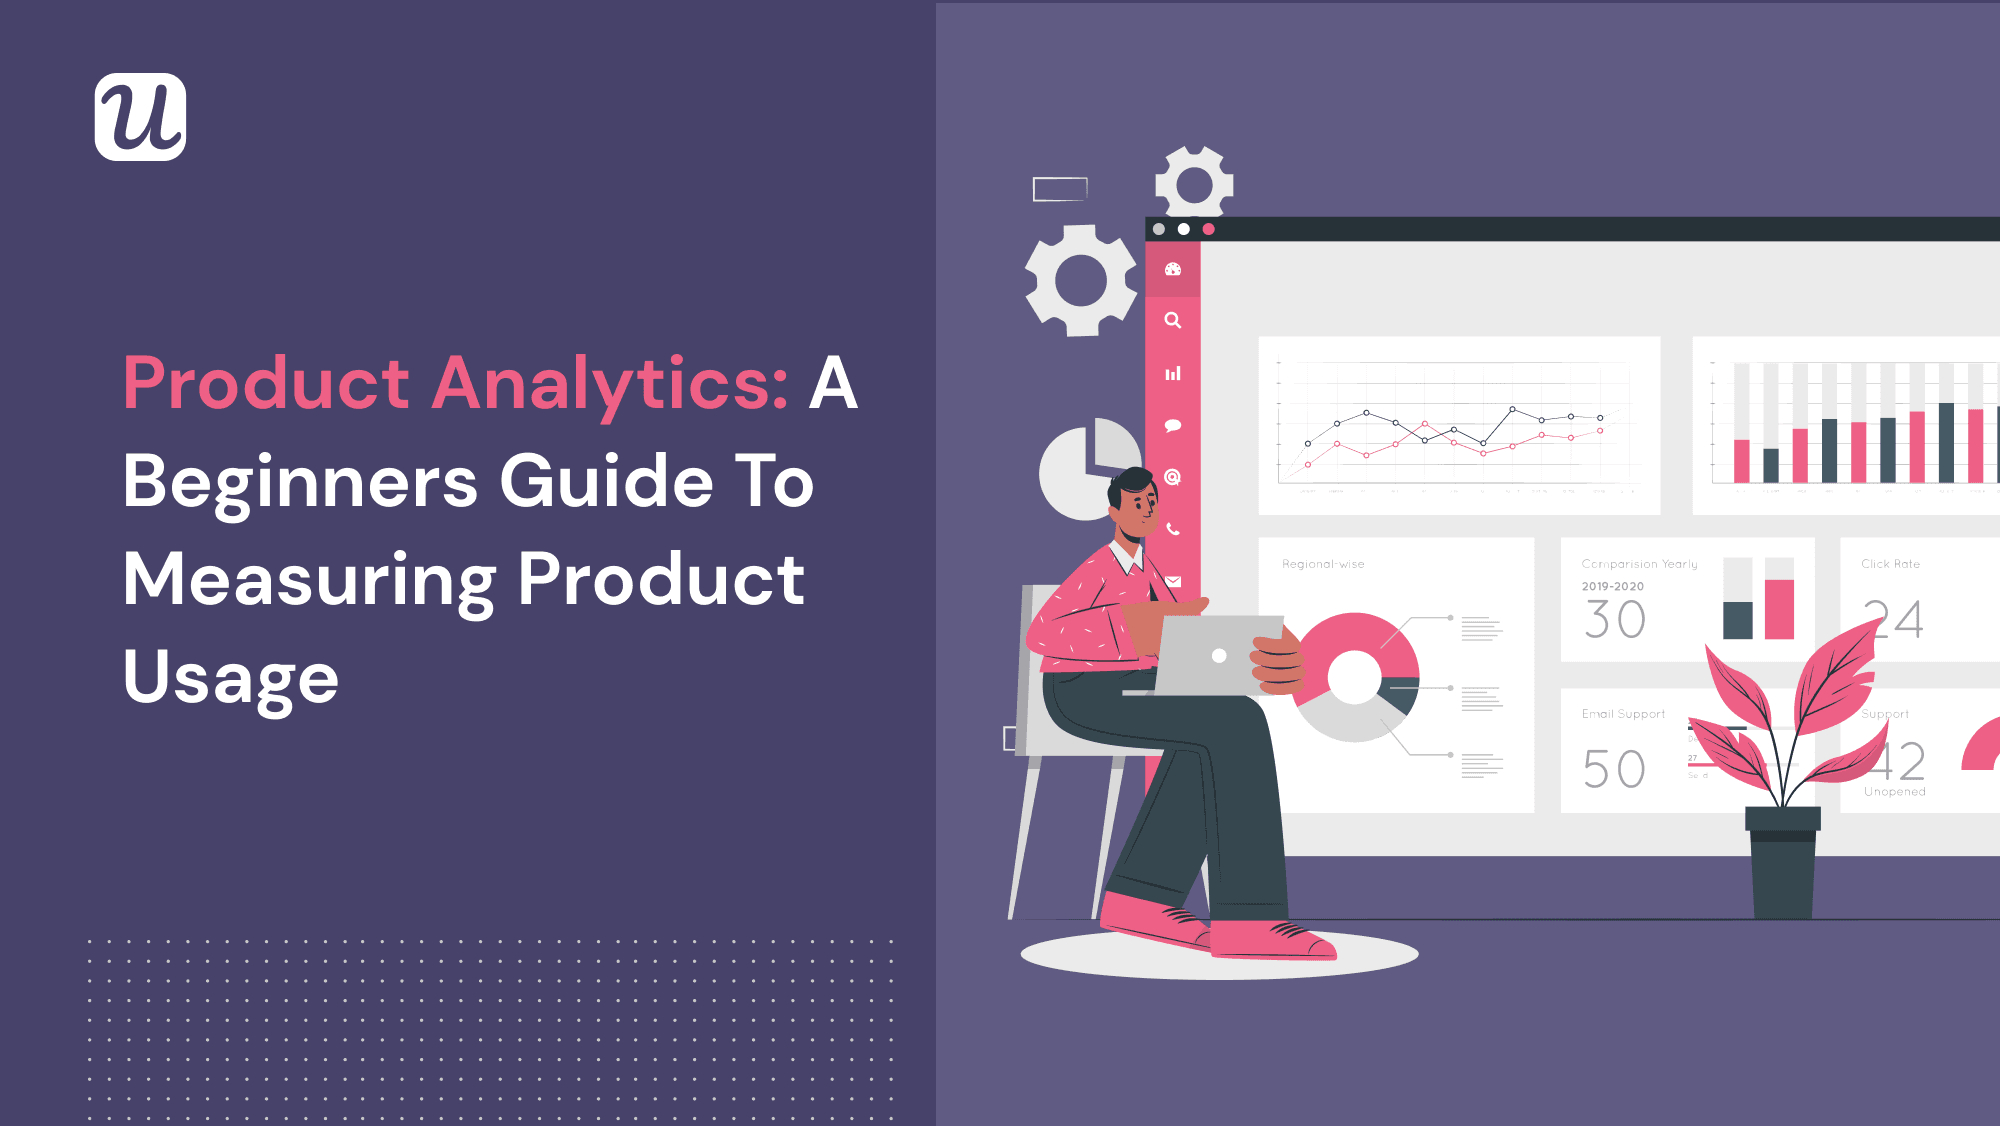 Product Analytics: A Beginner's Guide To Measuring Product Usage + Product Analytics Tools